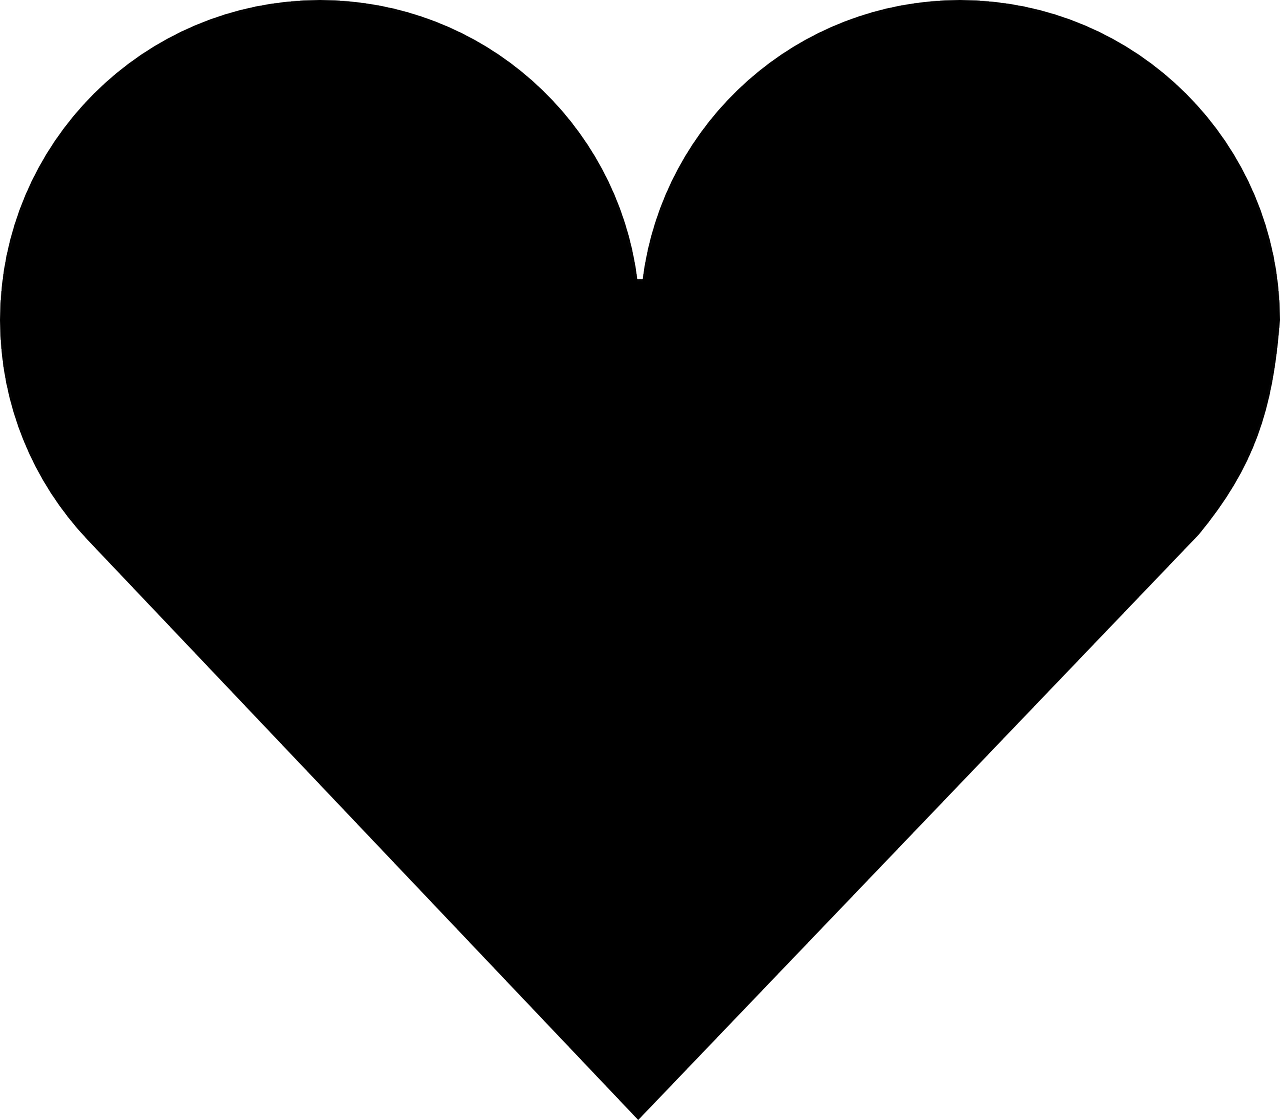 Download Heart Free Png Image - Heart Icon Transparent